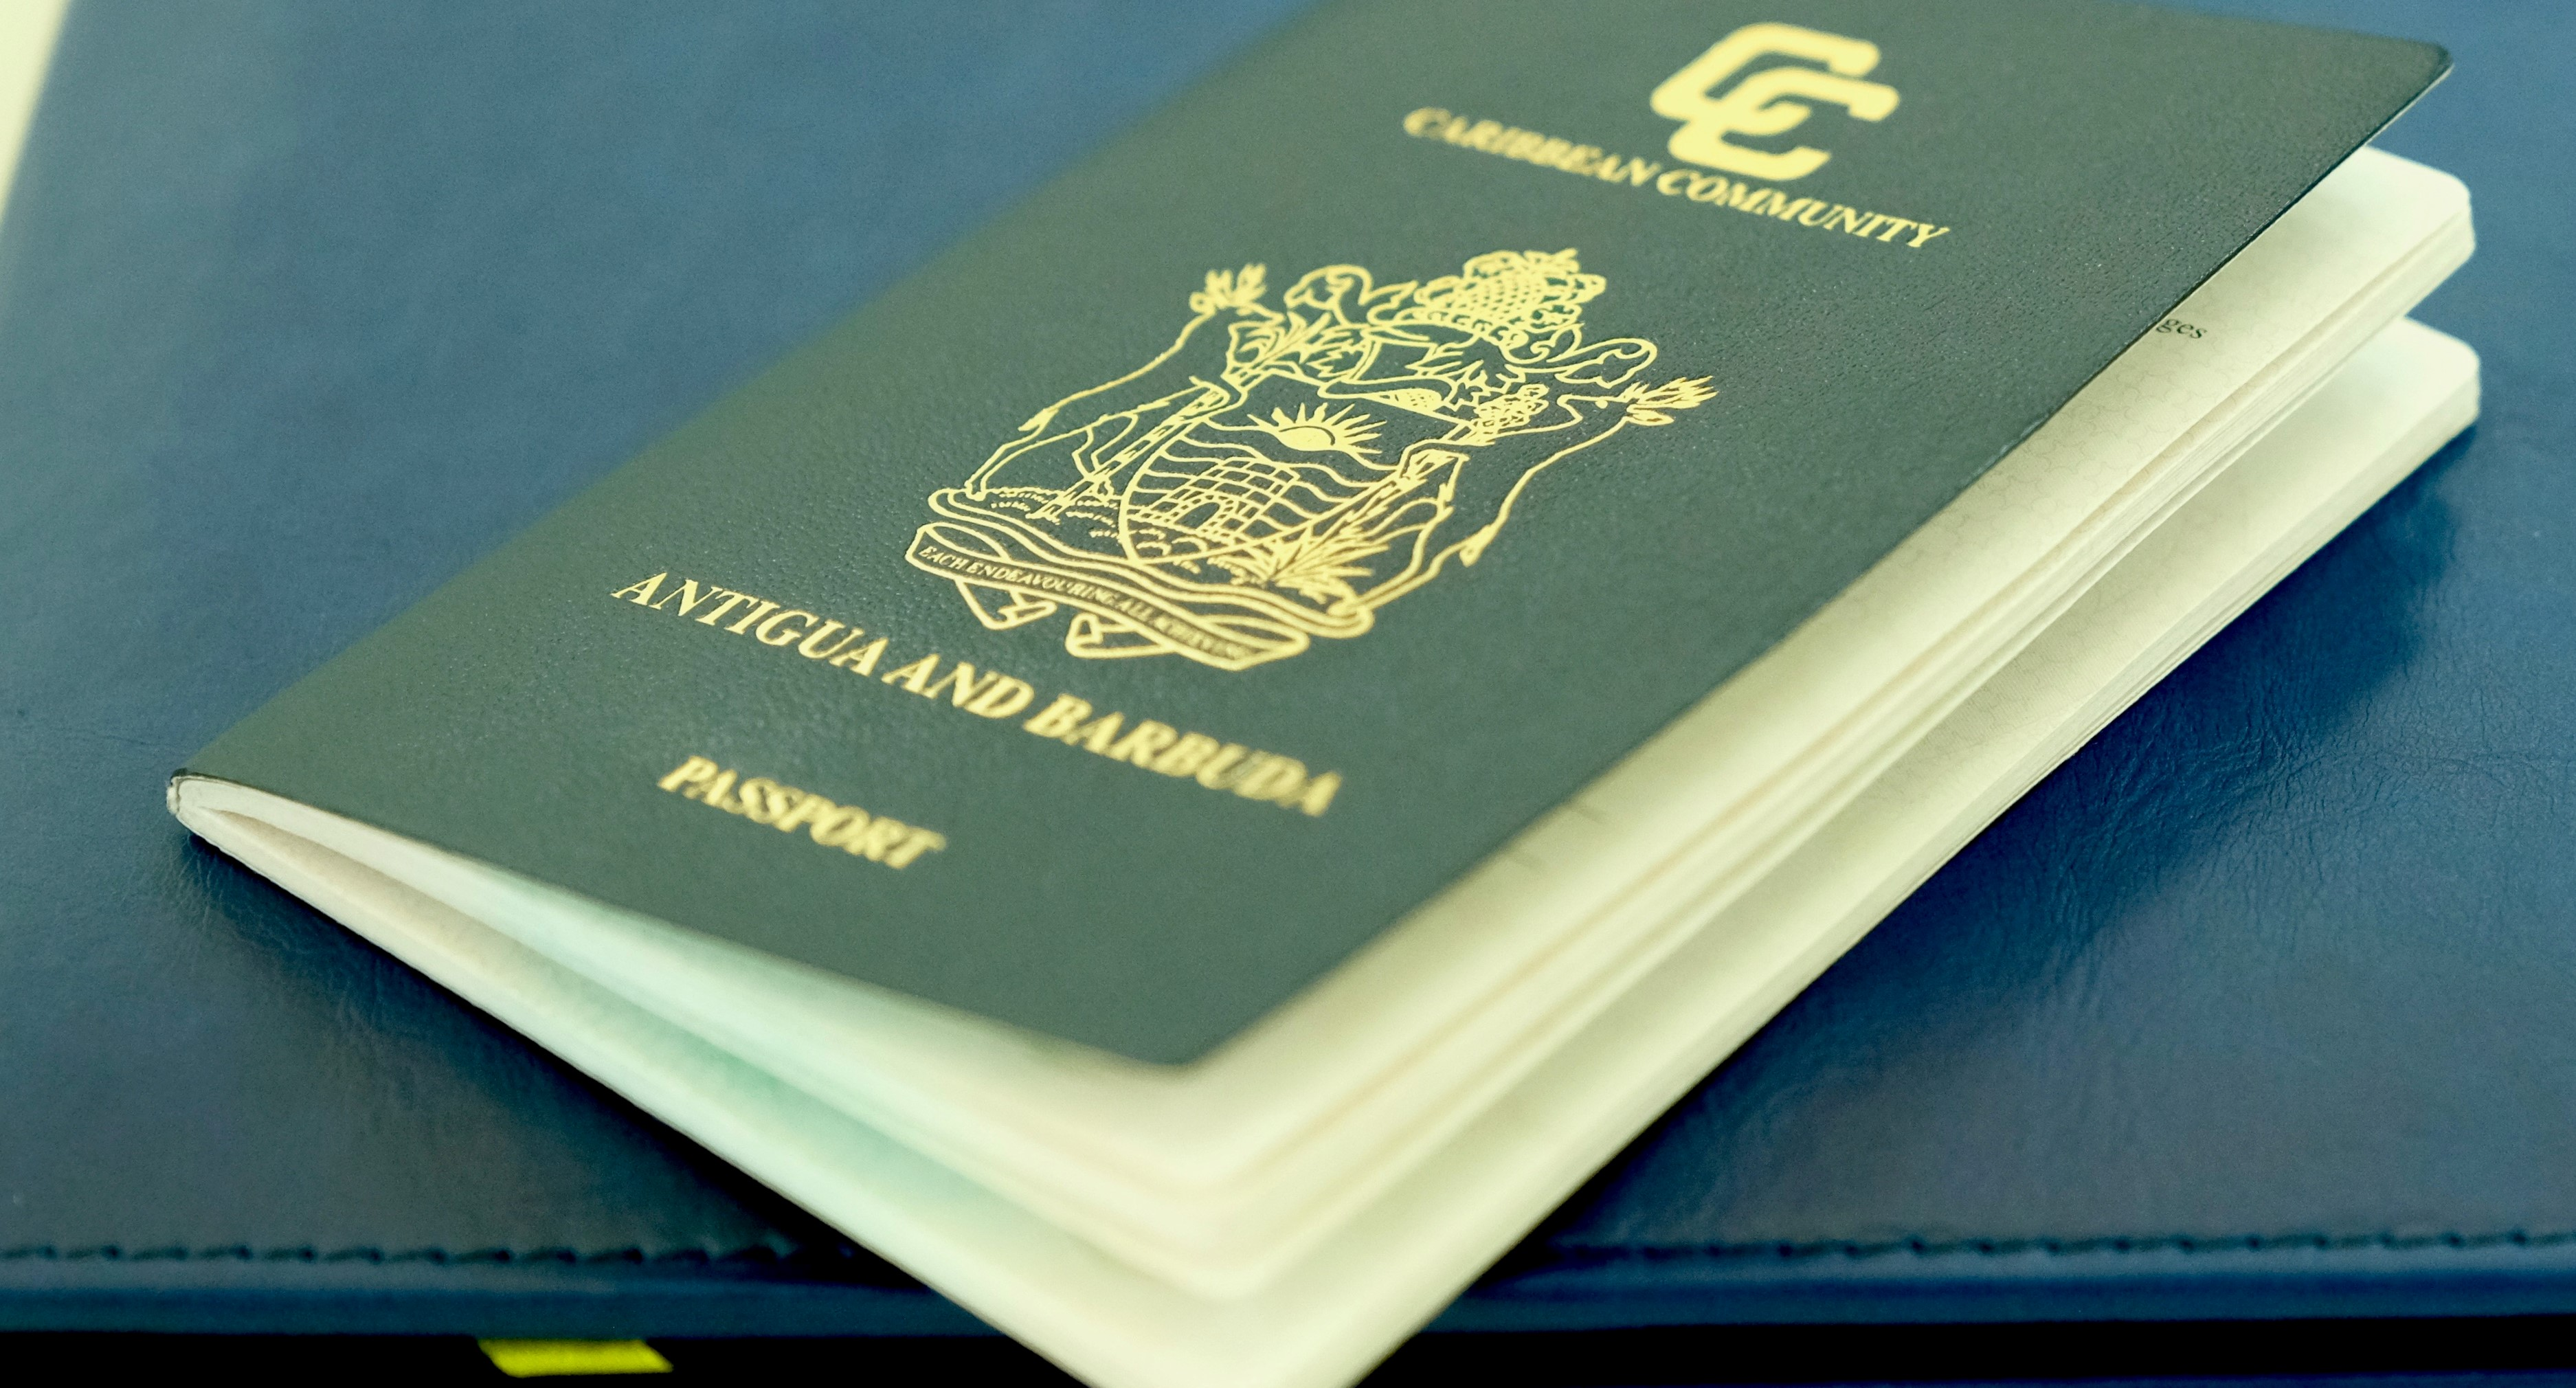 Citizens of Antigua and Barbuda Have Until June 30, 2020 to Acquire New Biometric Passport